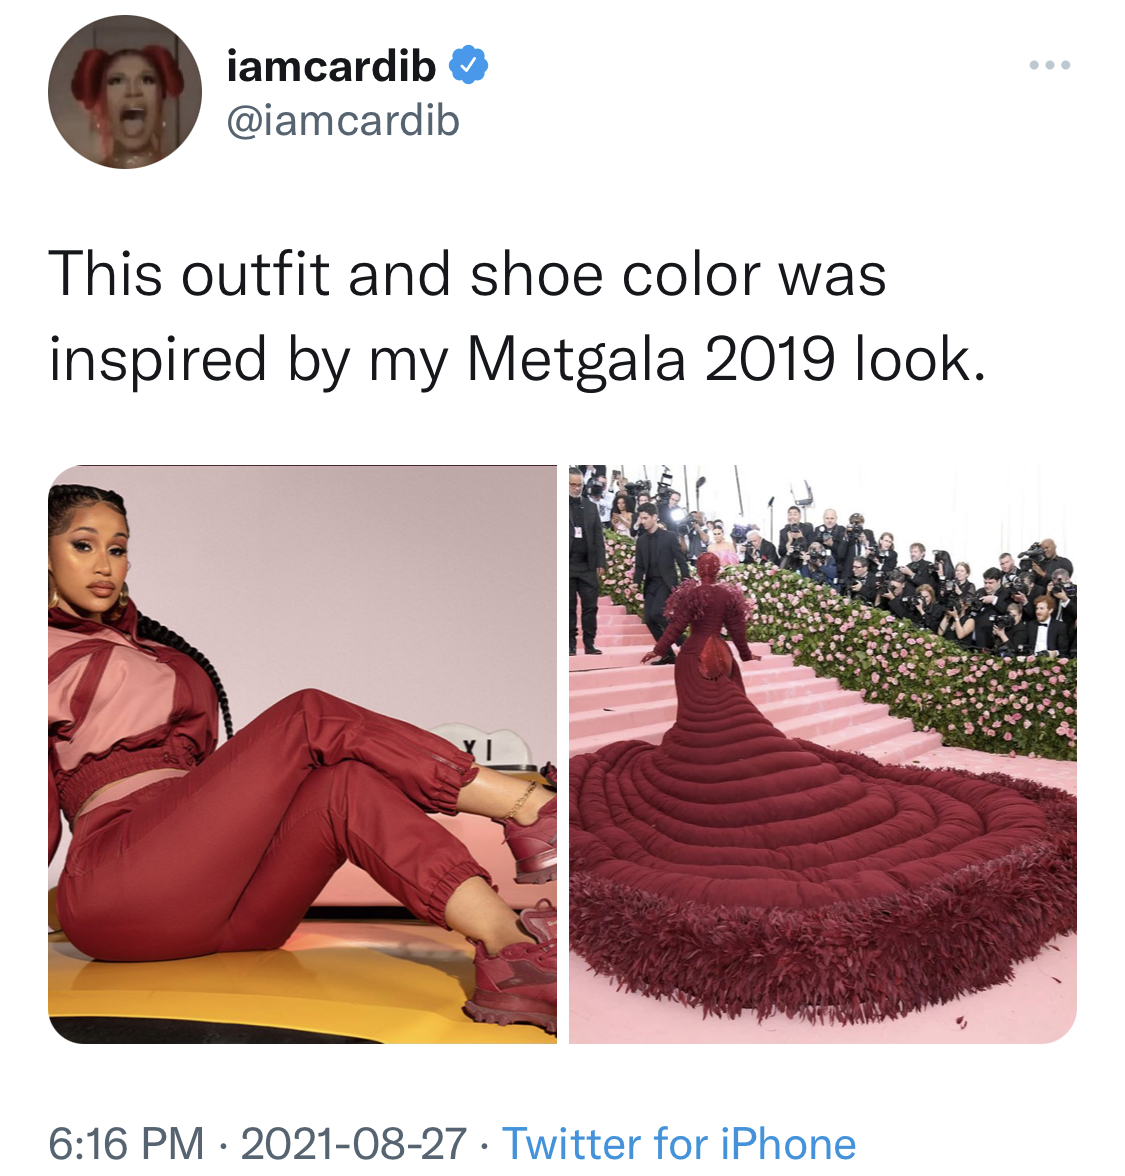 Cardi B x Reebok's Latest Collection Out Now